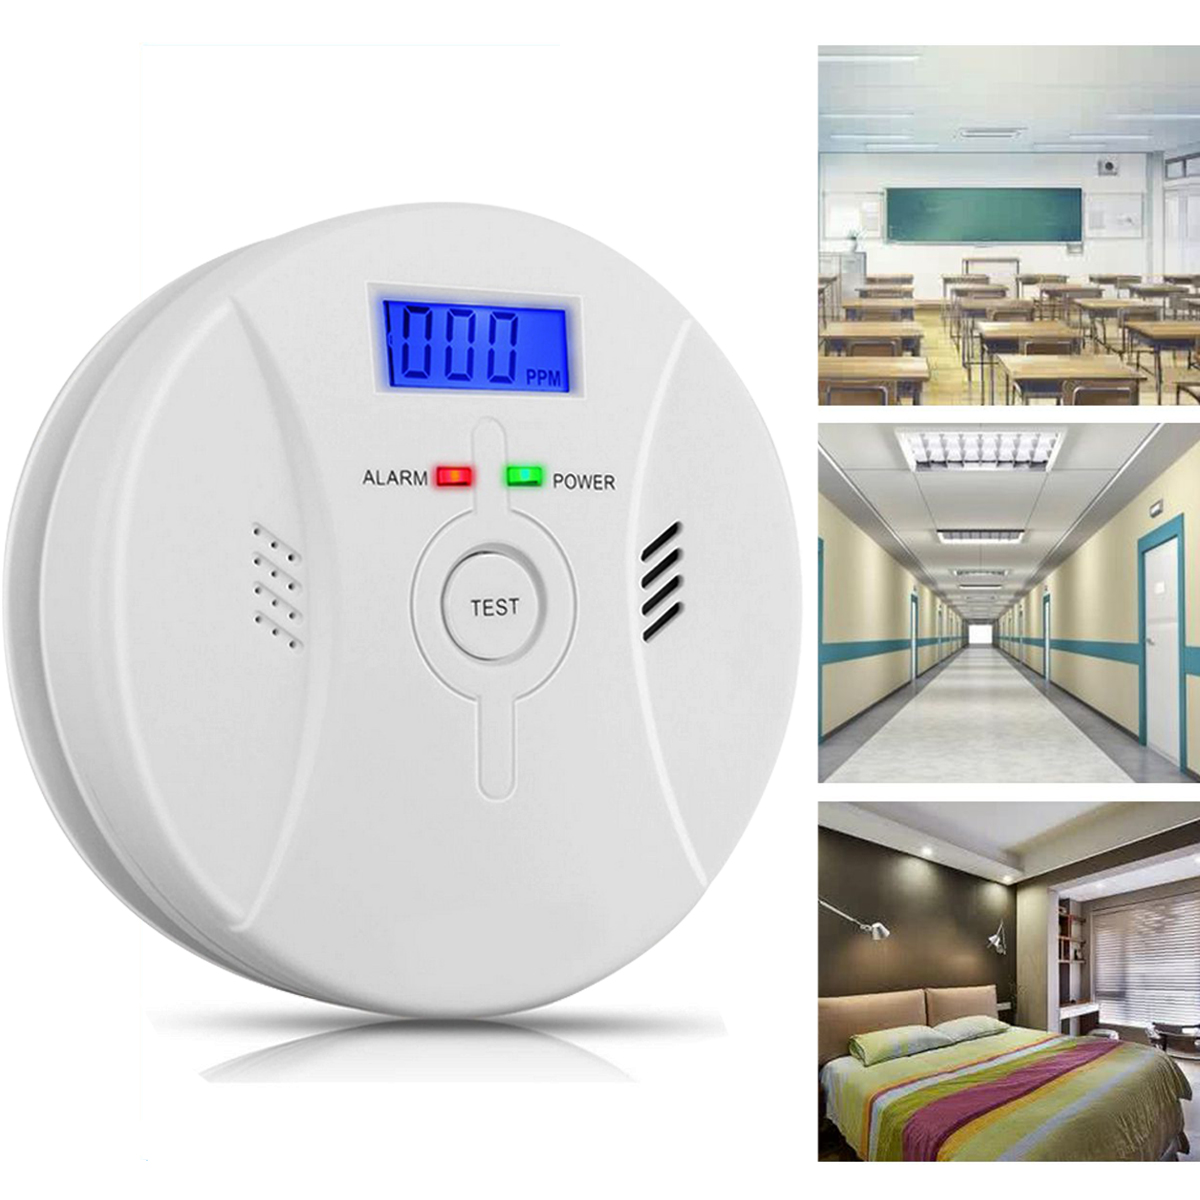 Smoke and Carbon Monoxide Alarm ,Sound & Flash Alarm Home Portable Security Warning Gas Smart prompt SMT manufacture technology Battery-Operated